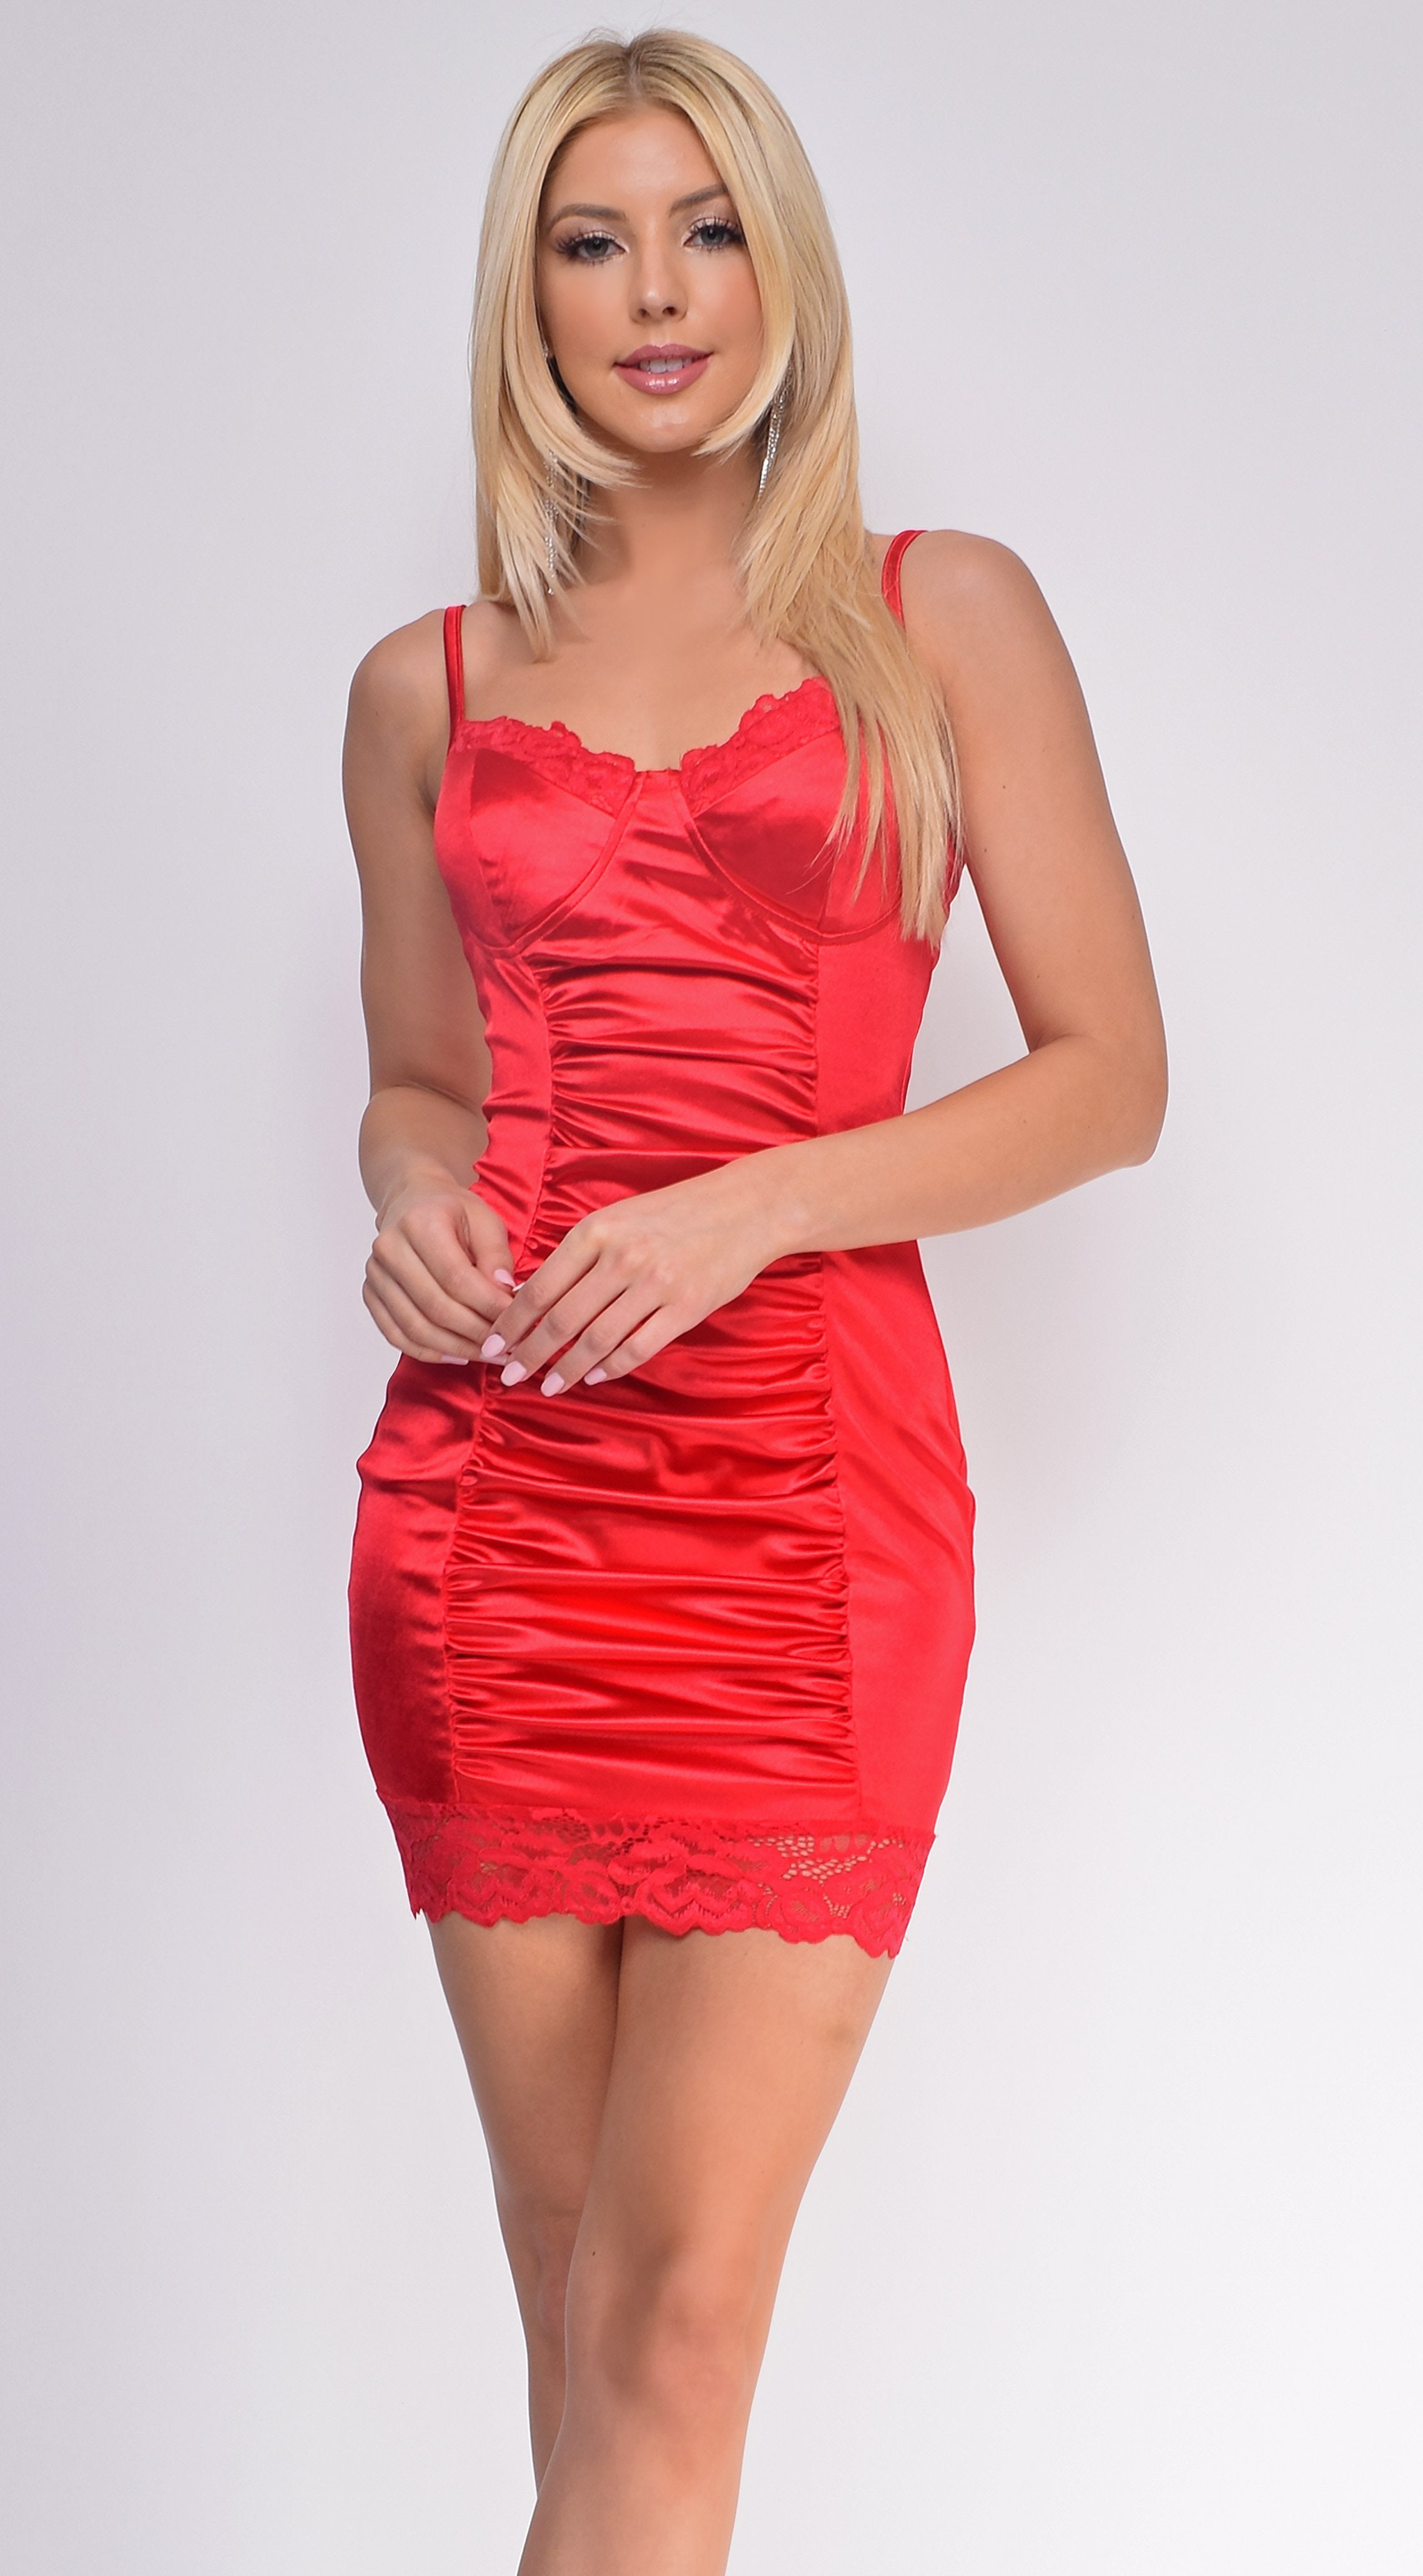 Makella Red Corset Ruched Satin Dress